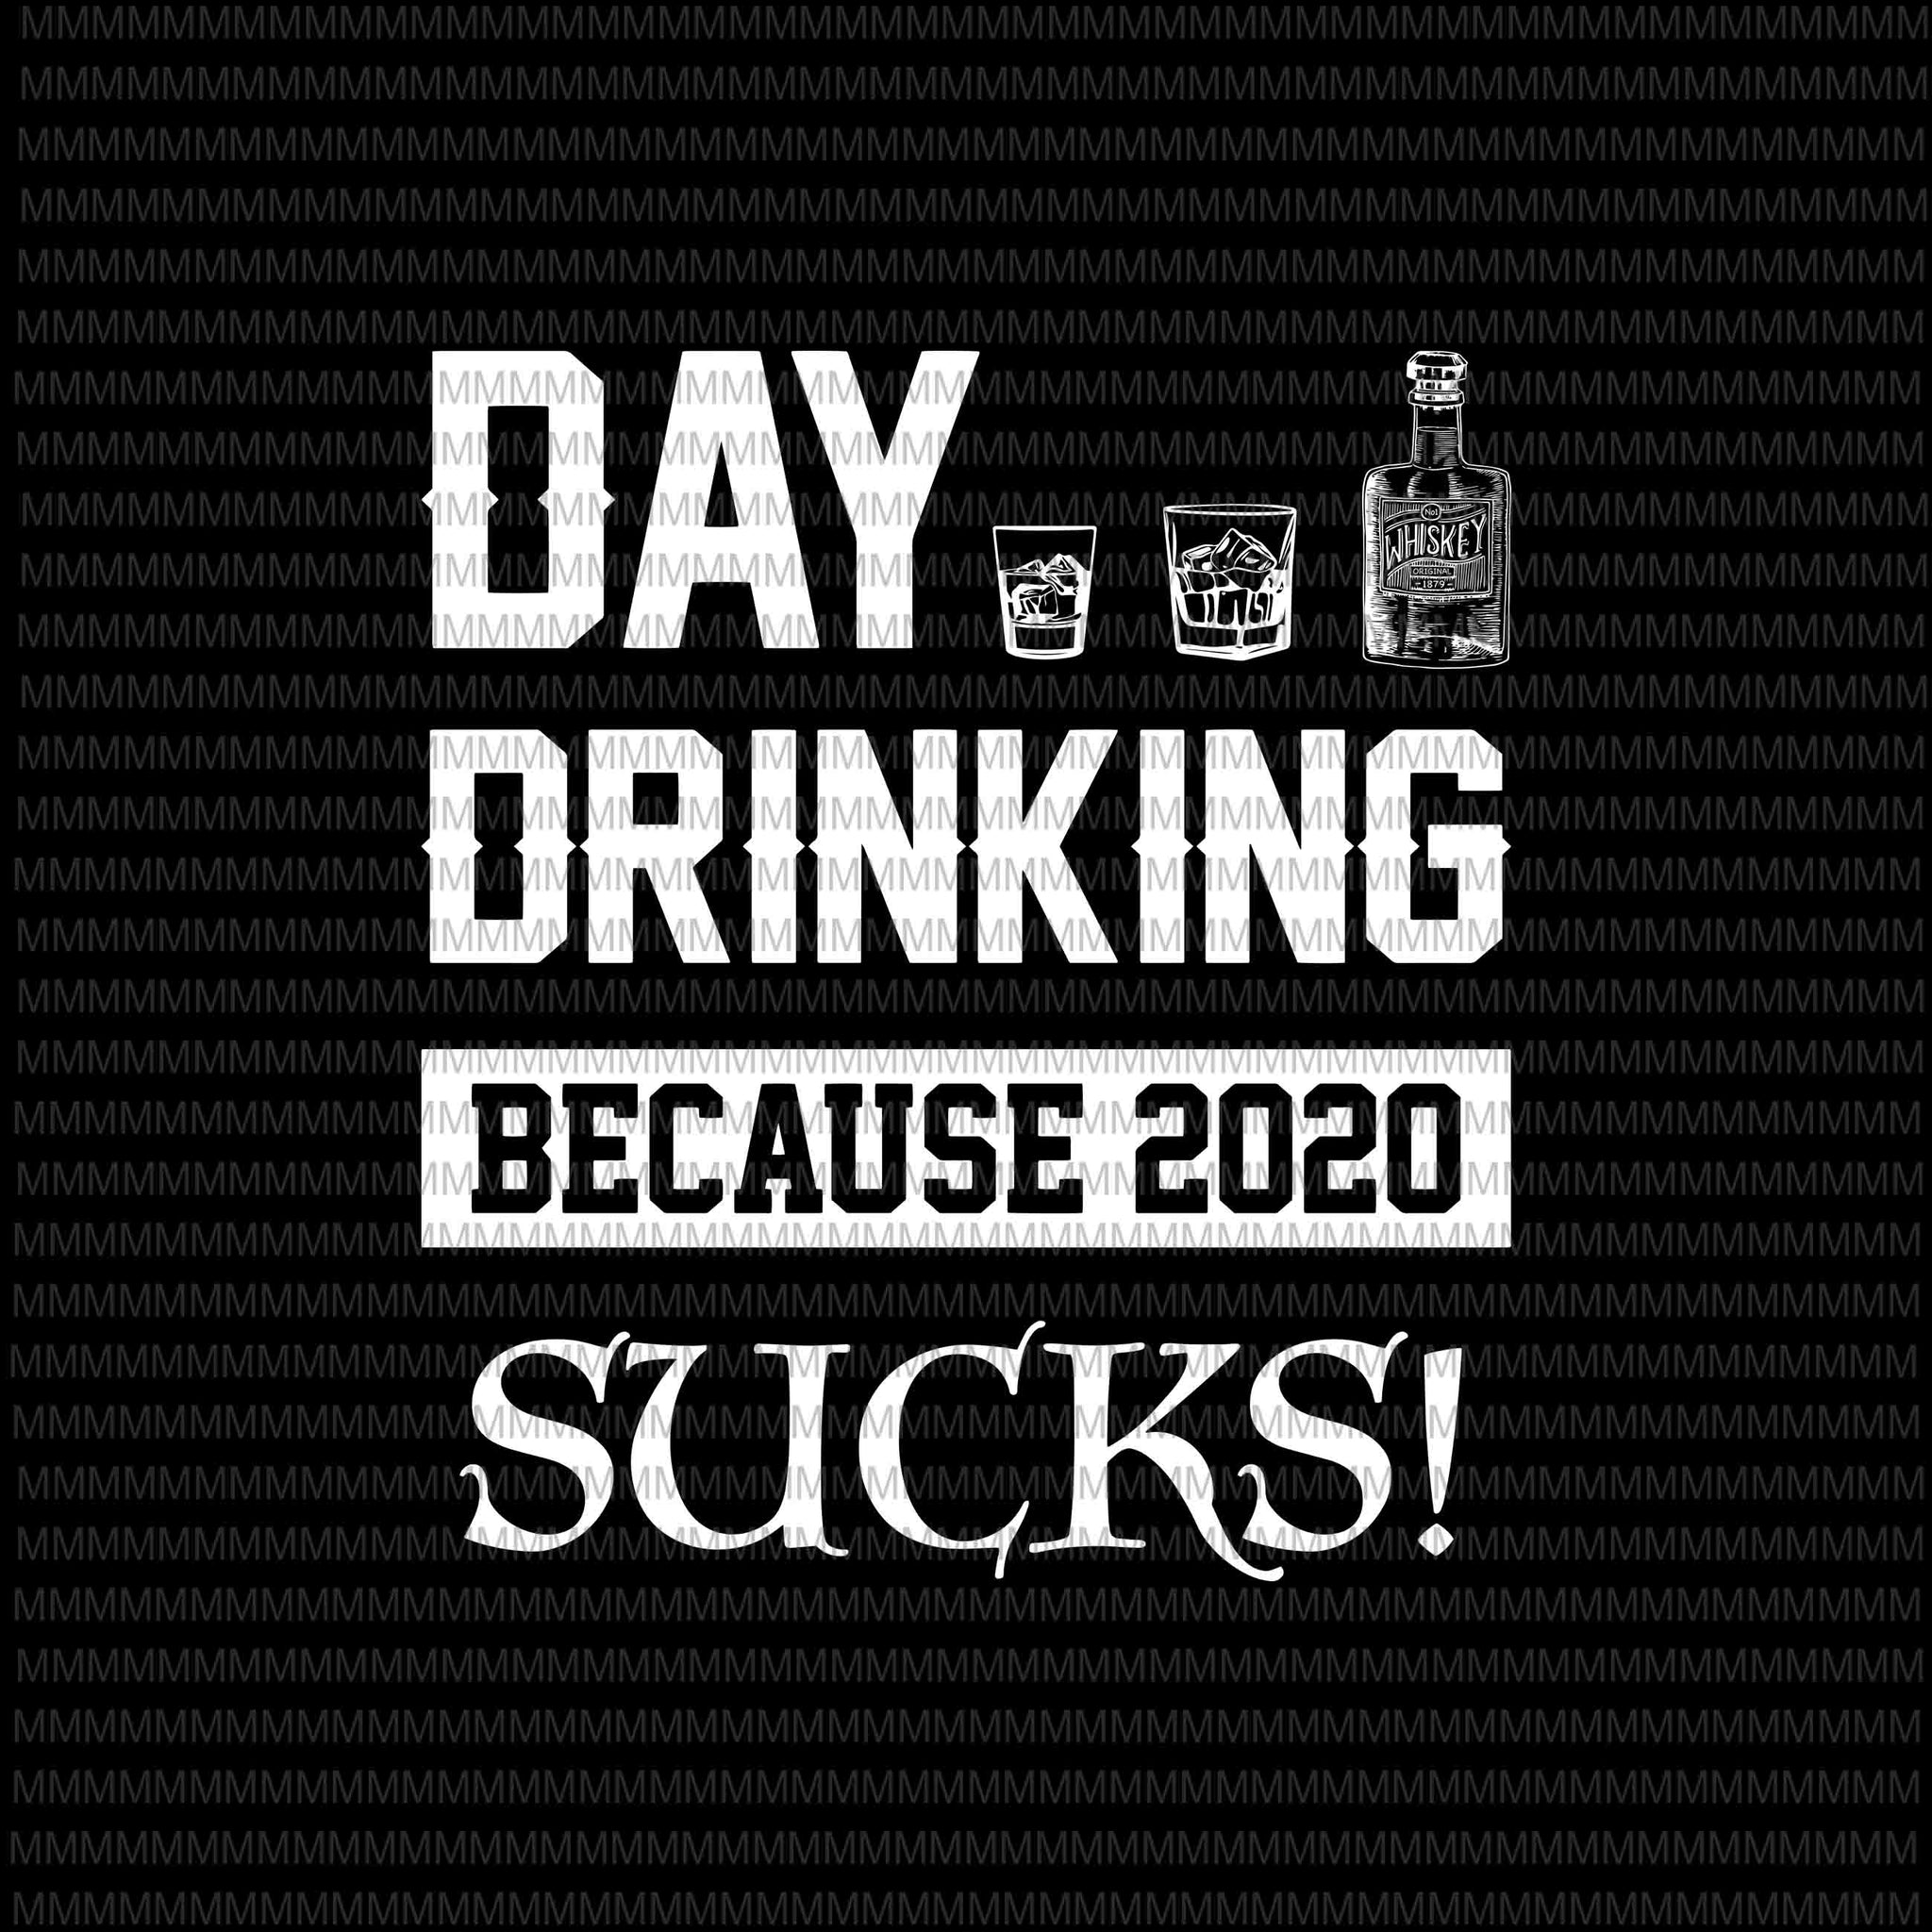 Day drinking because 2020 sucks SVG PNG, Elections 2020 Design, President 2020 svg, png, dxf, eps, ai files